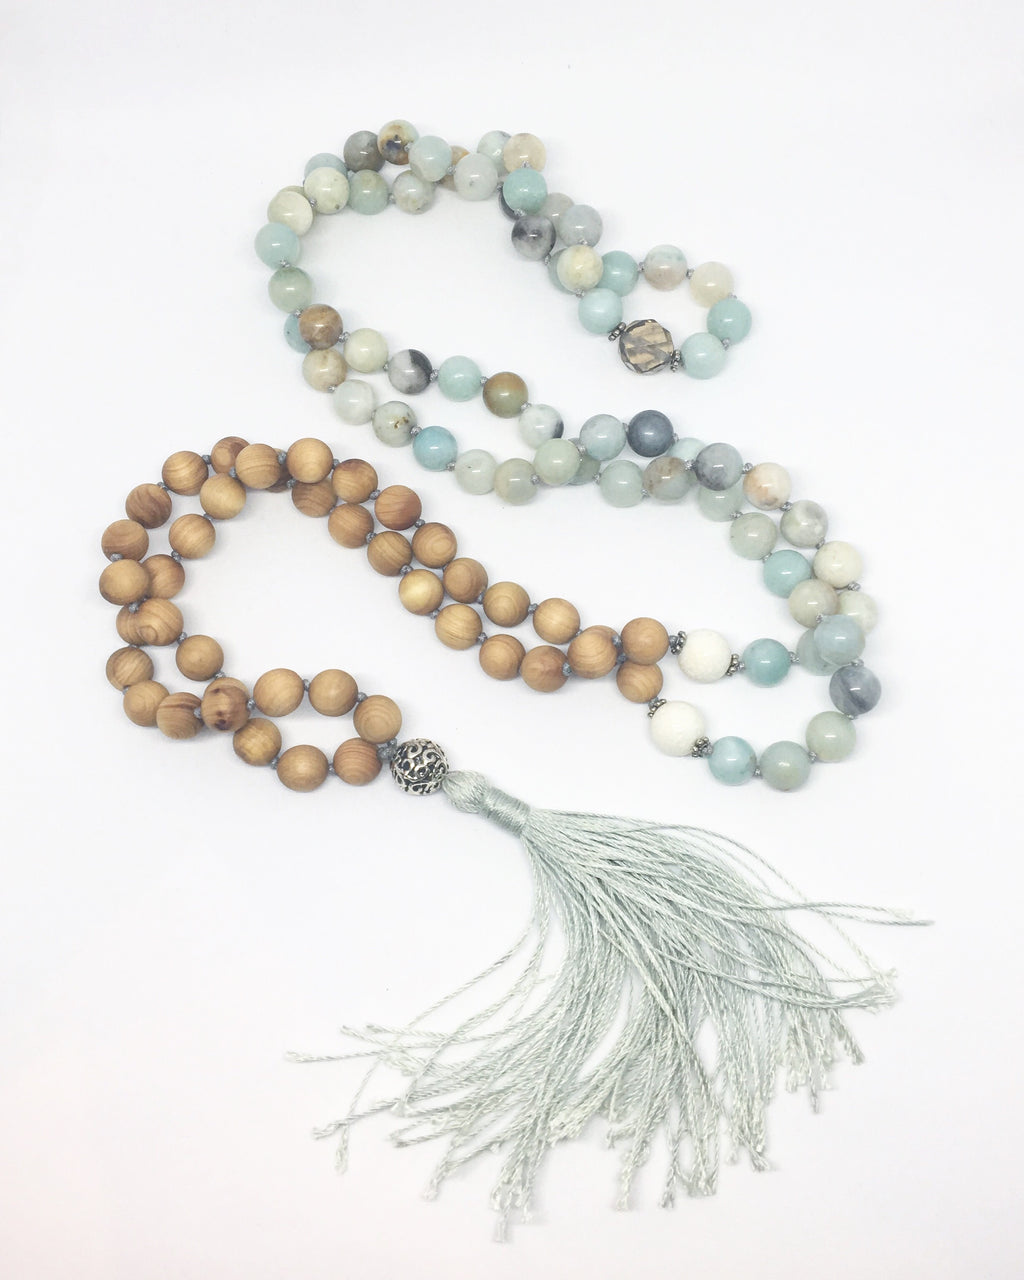 Handstrung Mala Prayer Necklace